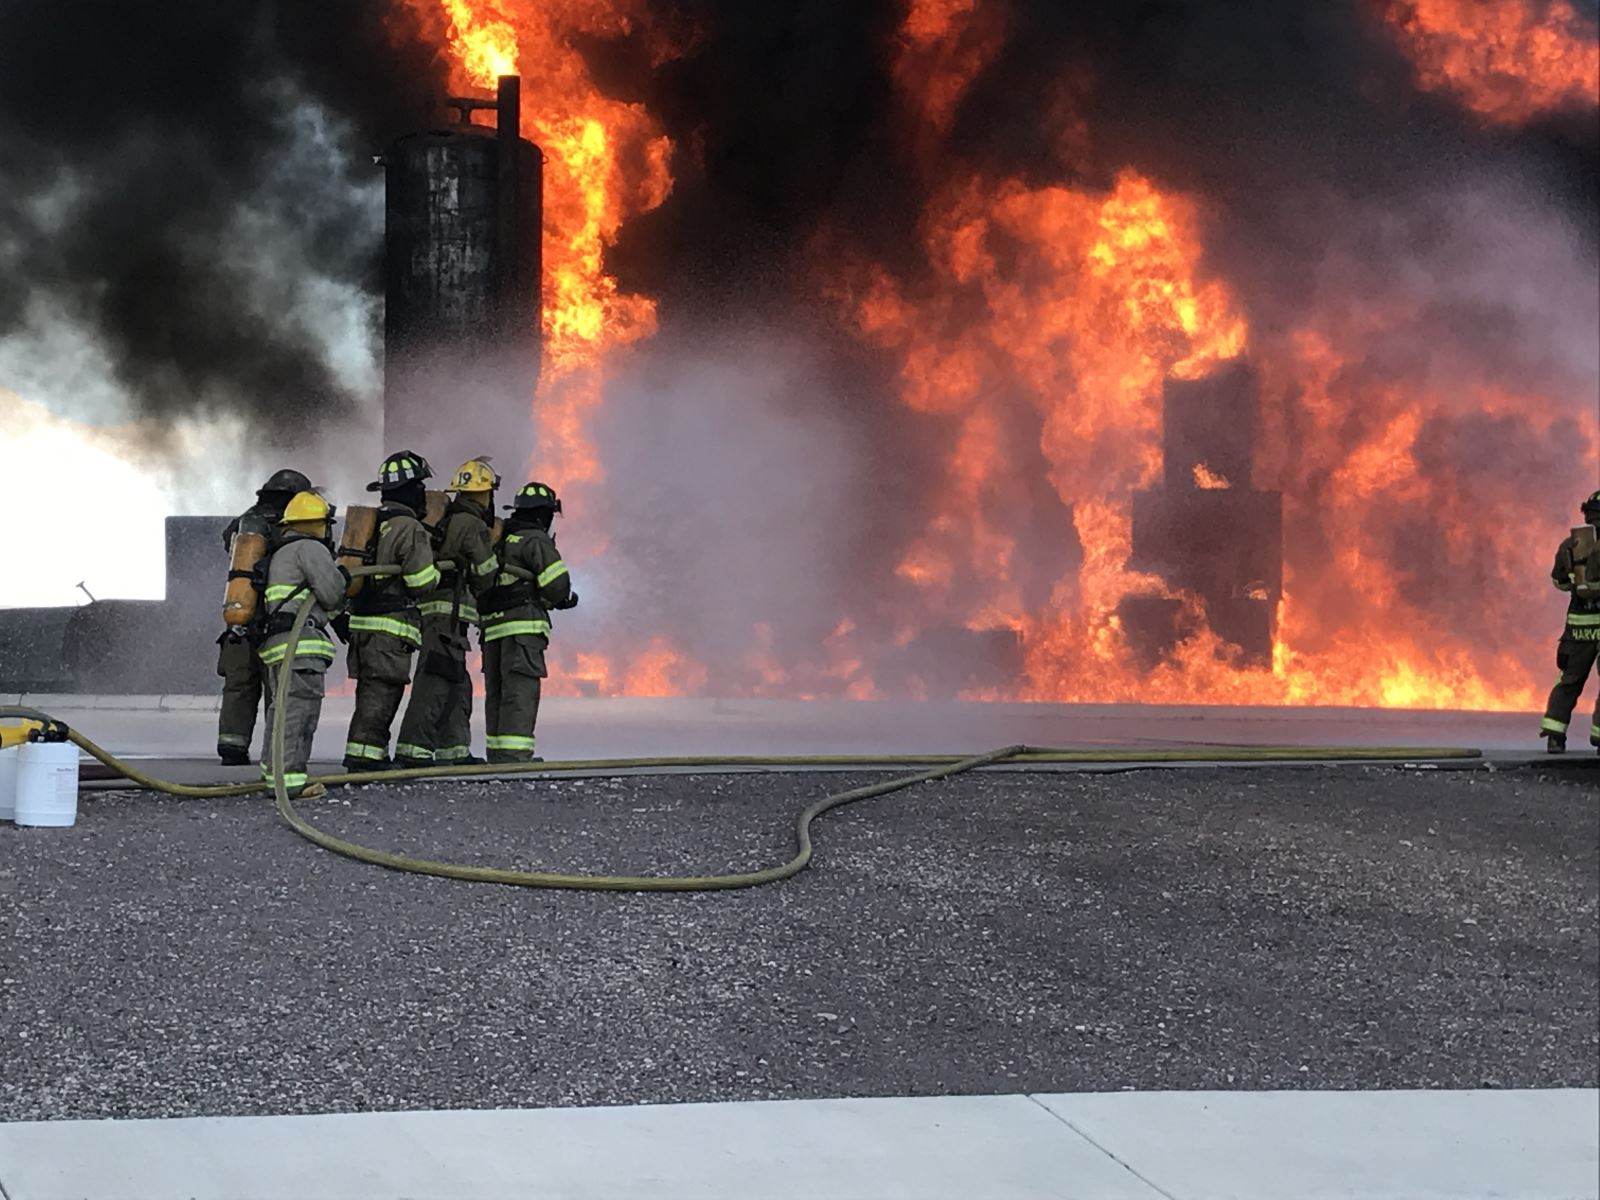 Laguna Fire Department puts out the flames of burning buildings